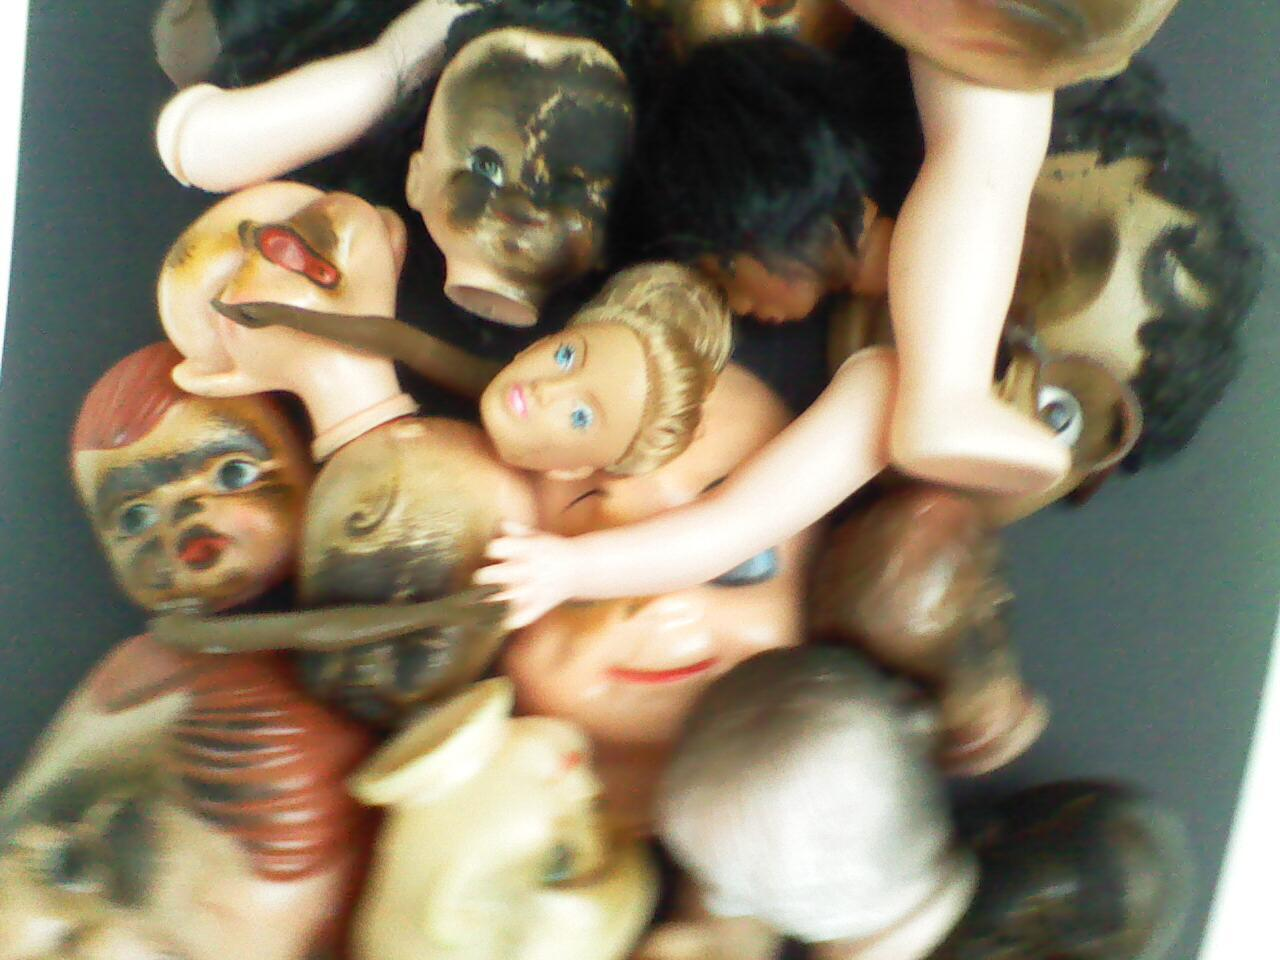 New Project: WebHeads! Create Spiderweb-Trapped Doll Heads forHalloween